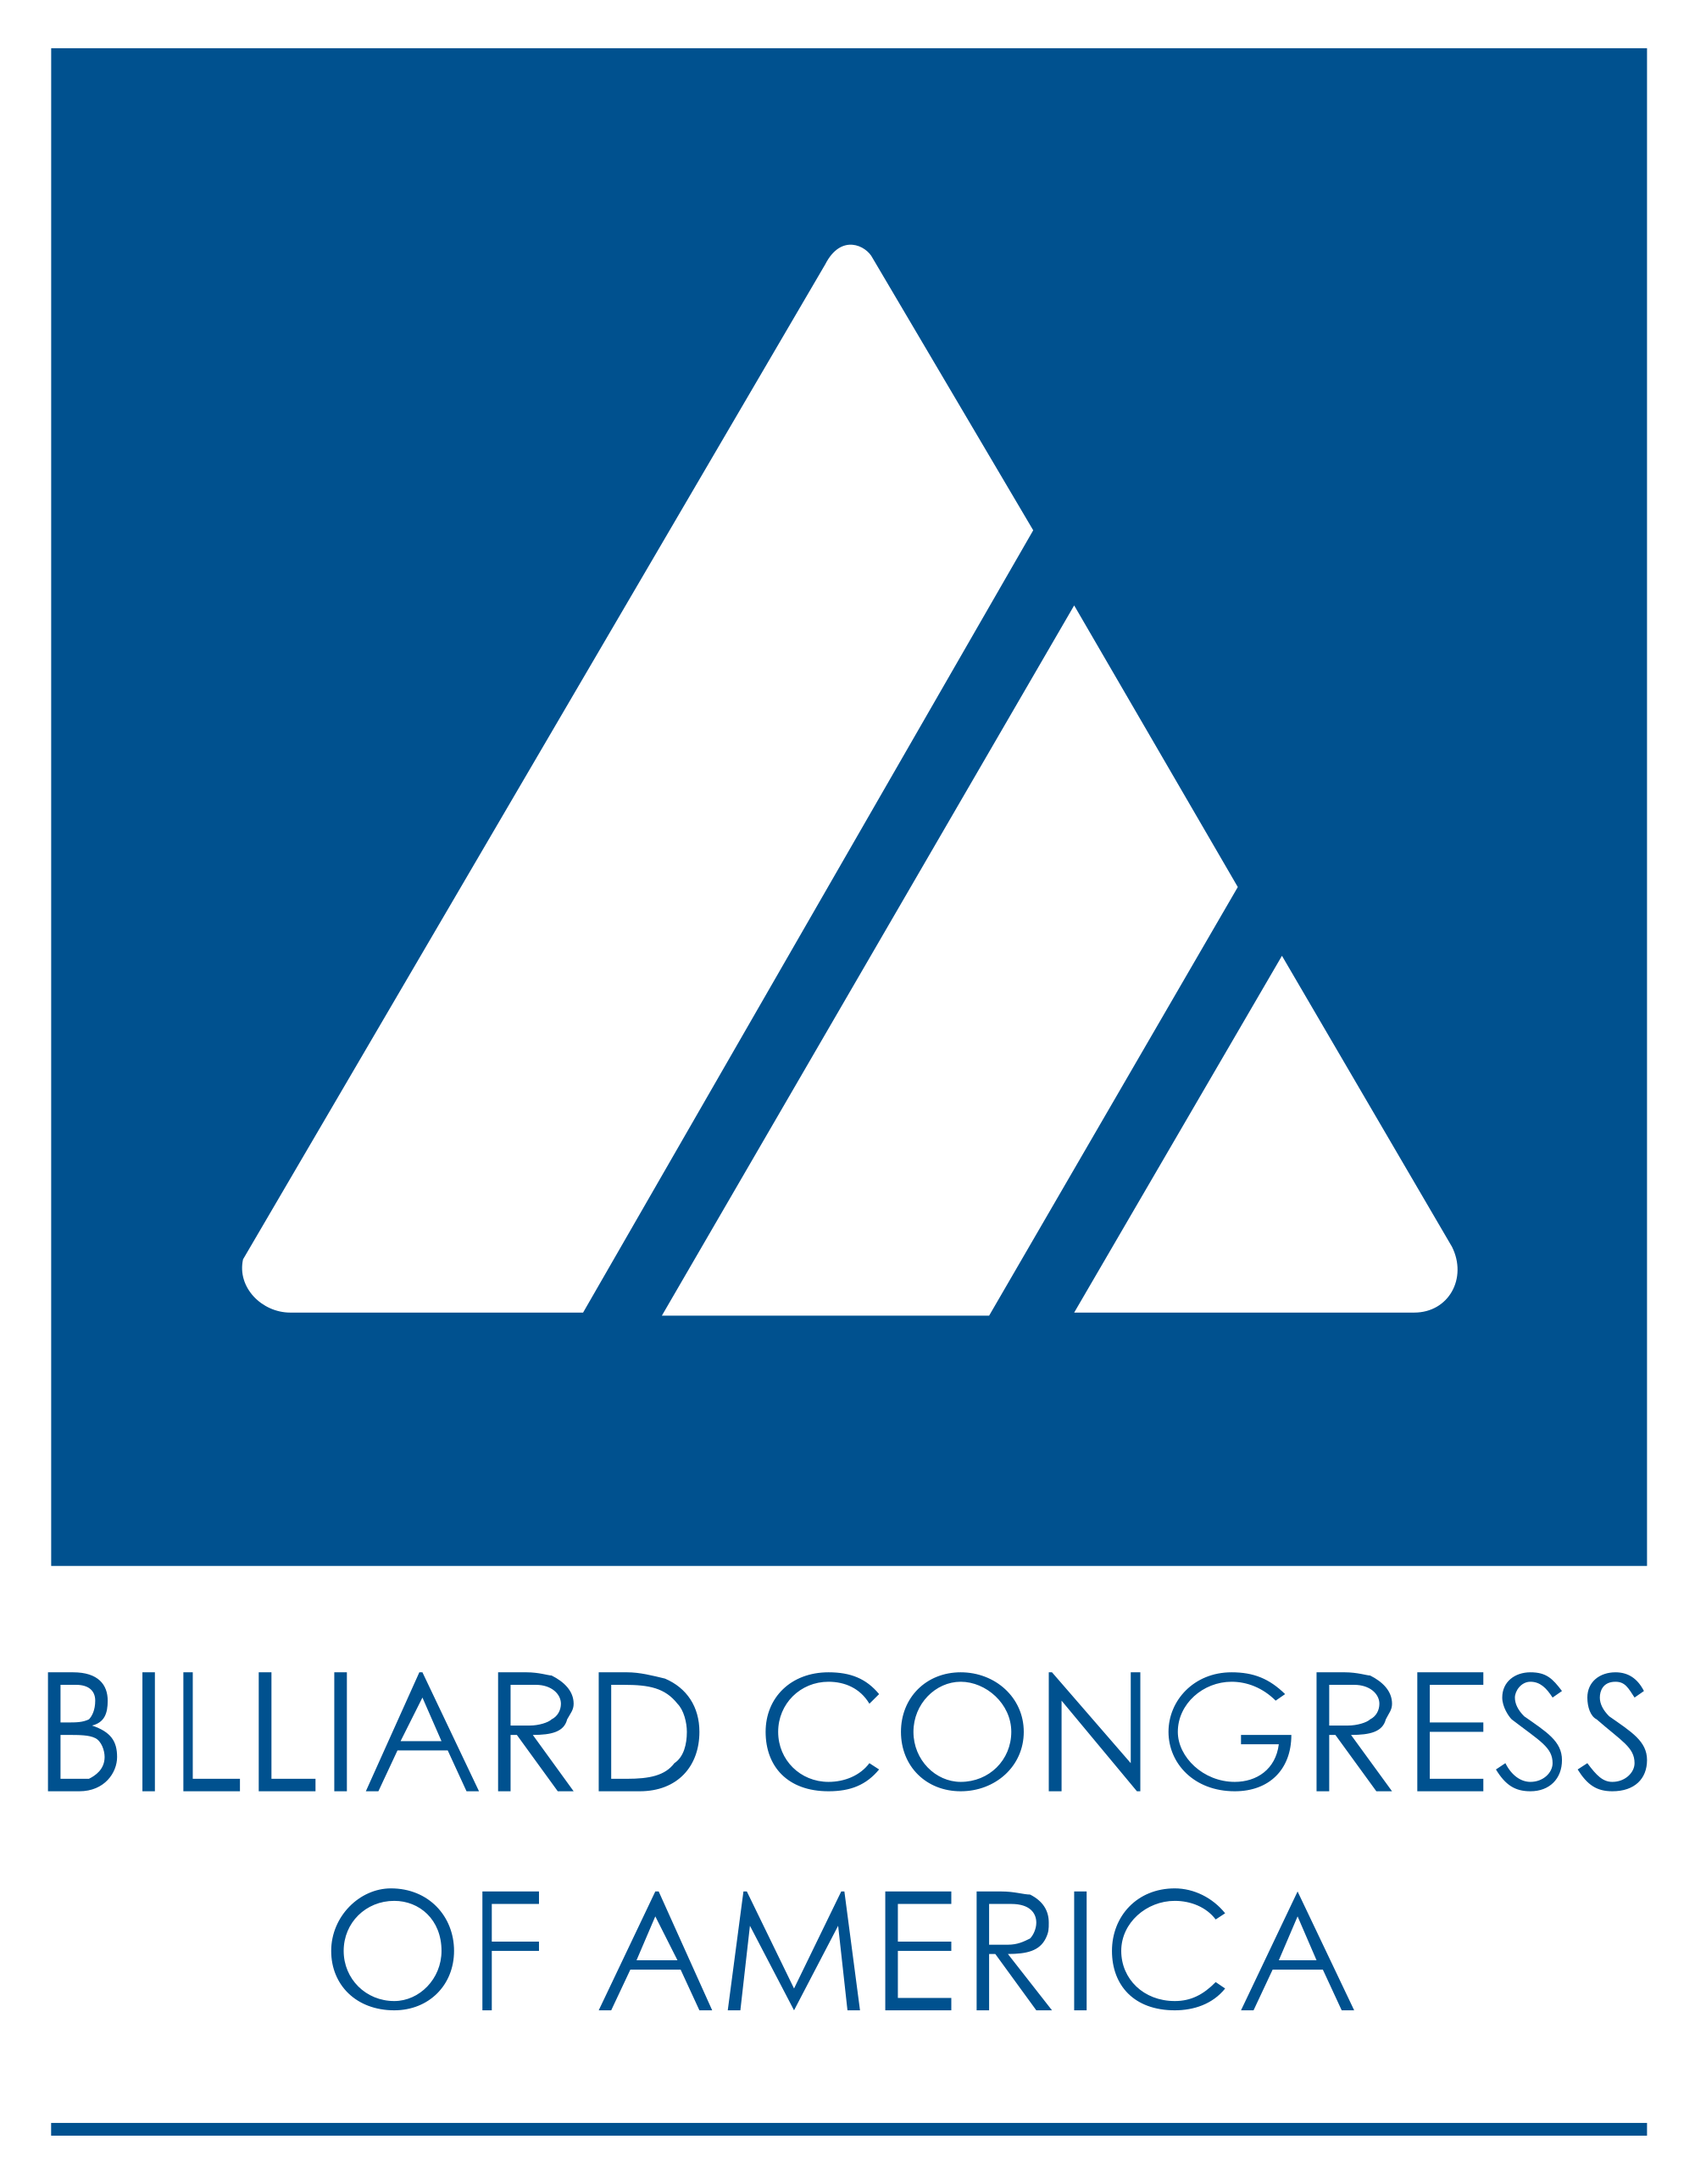 Logo_Billiard_Congress_of_America.